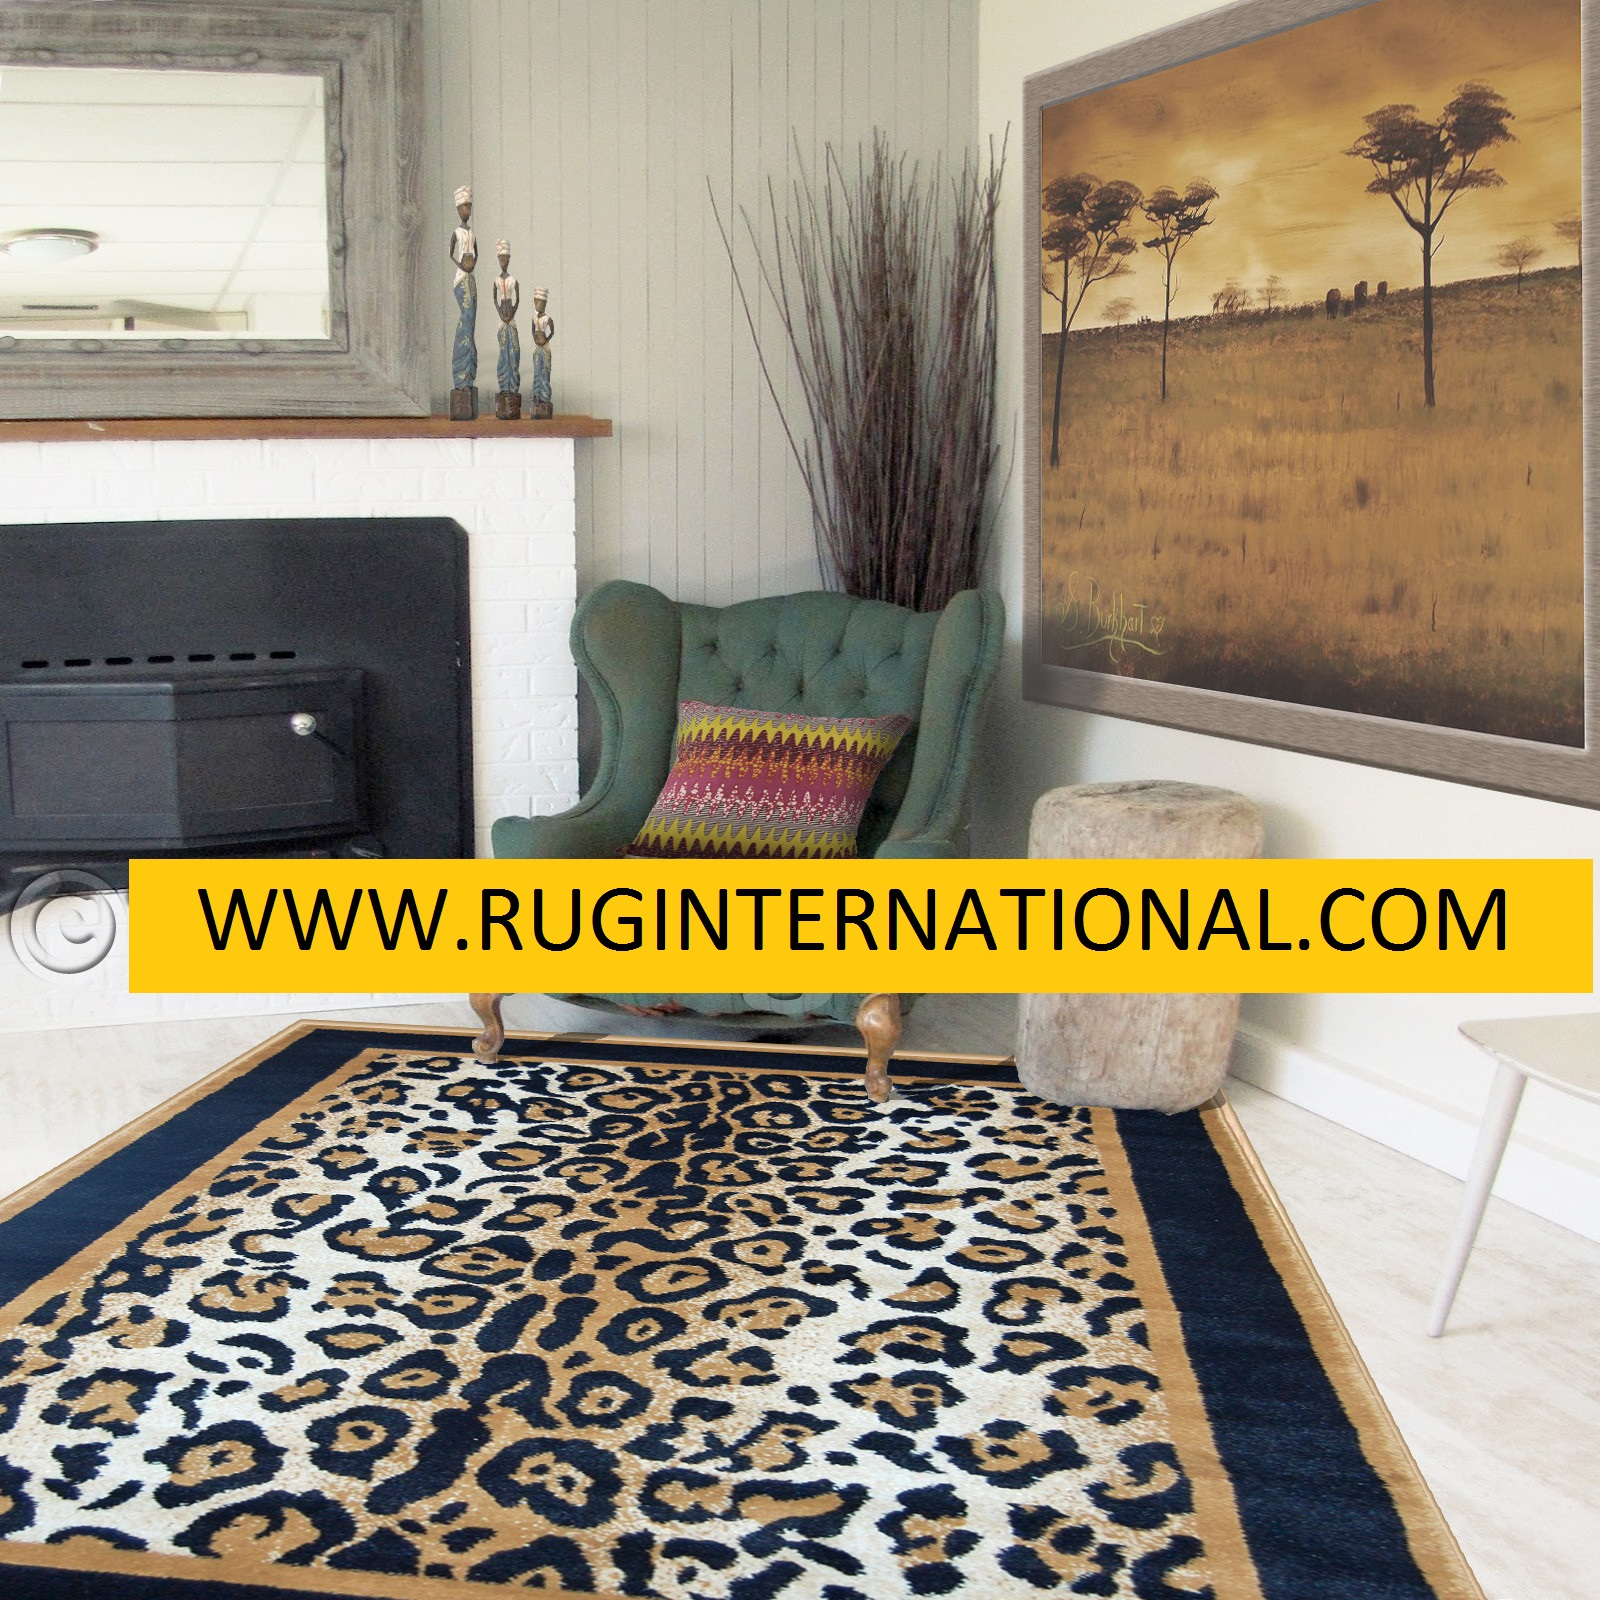 Chinese Rugs, Animal Blankets, Animal Print Rugs, African